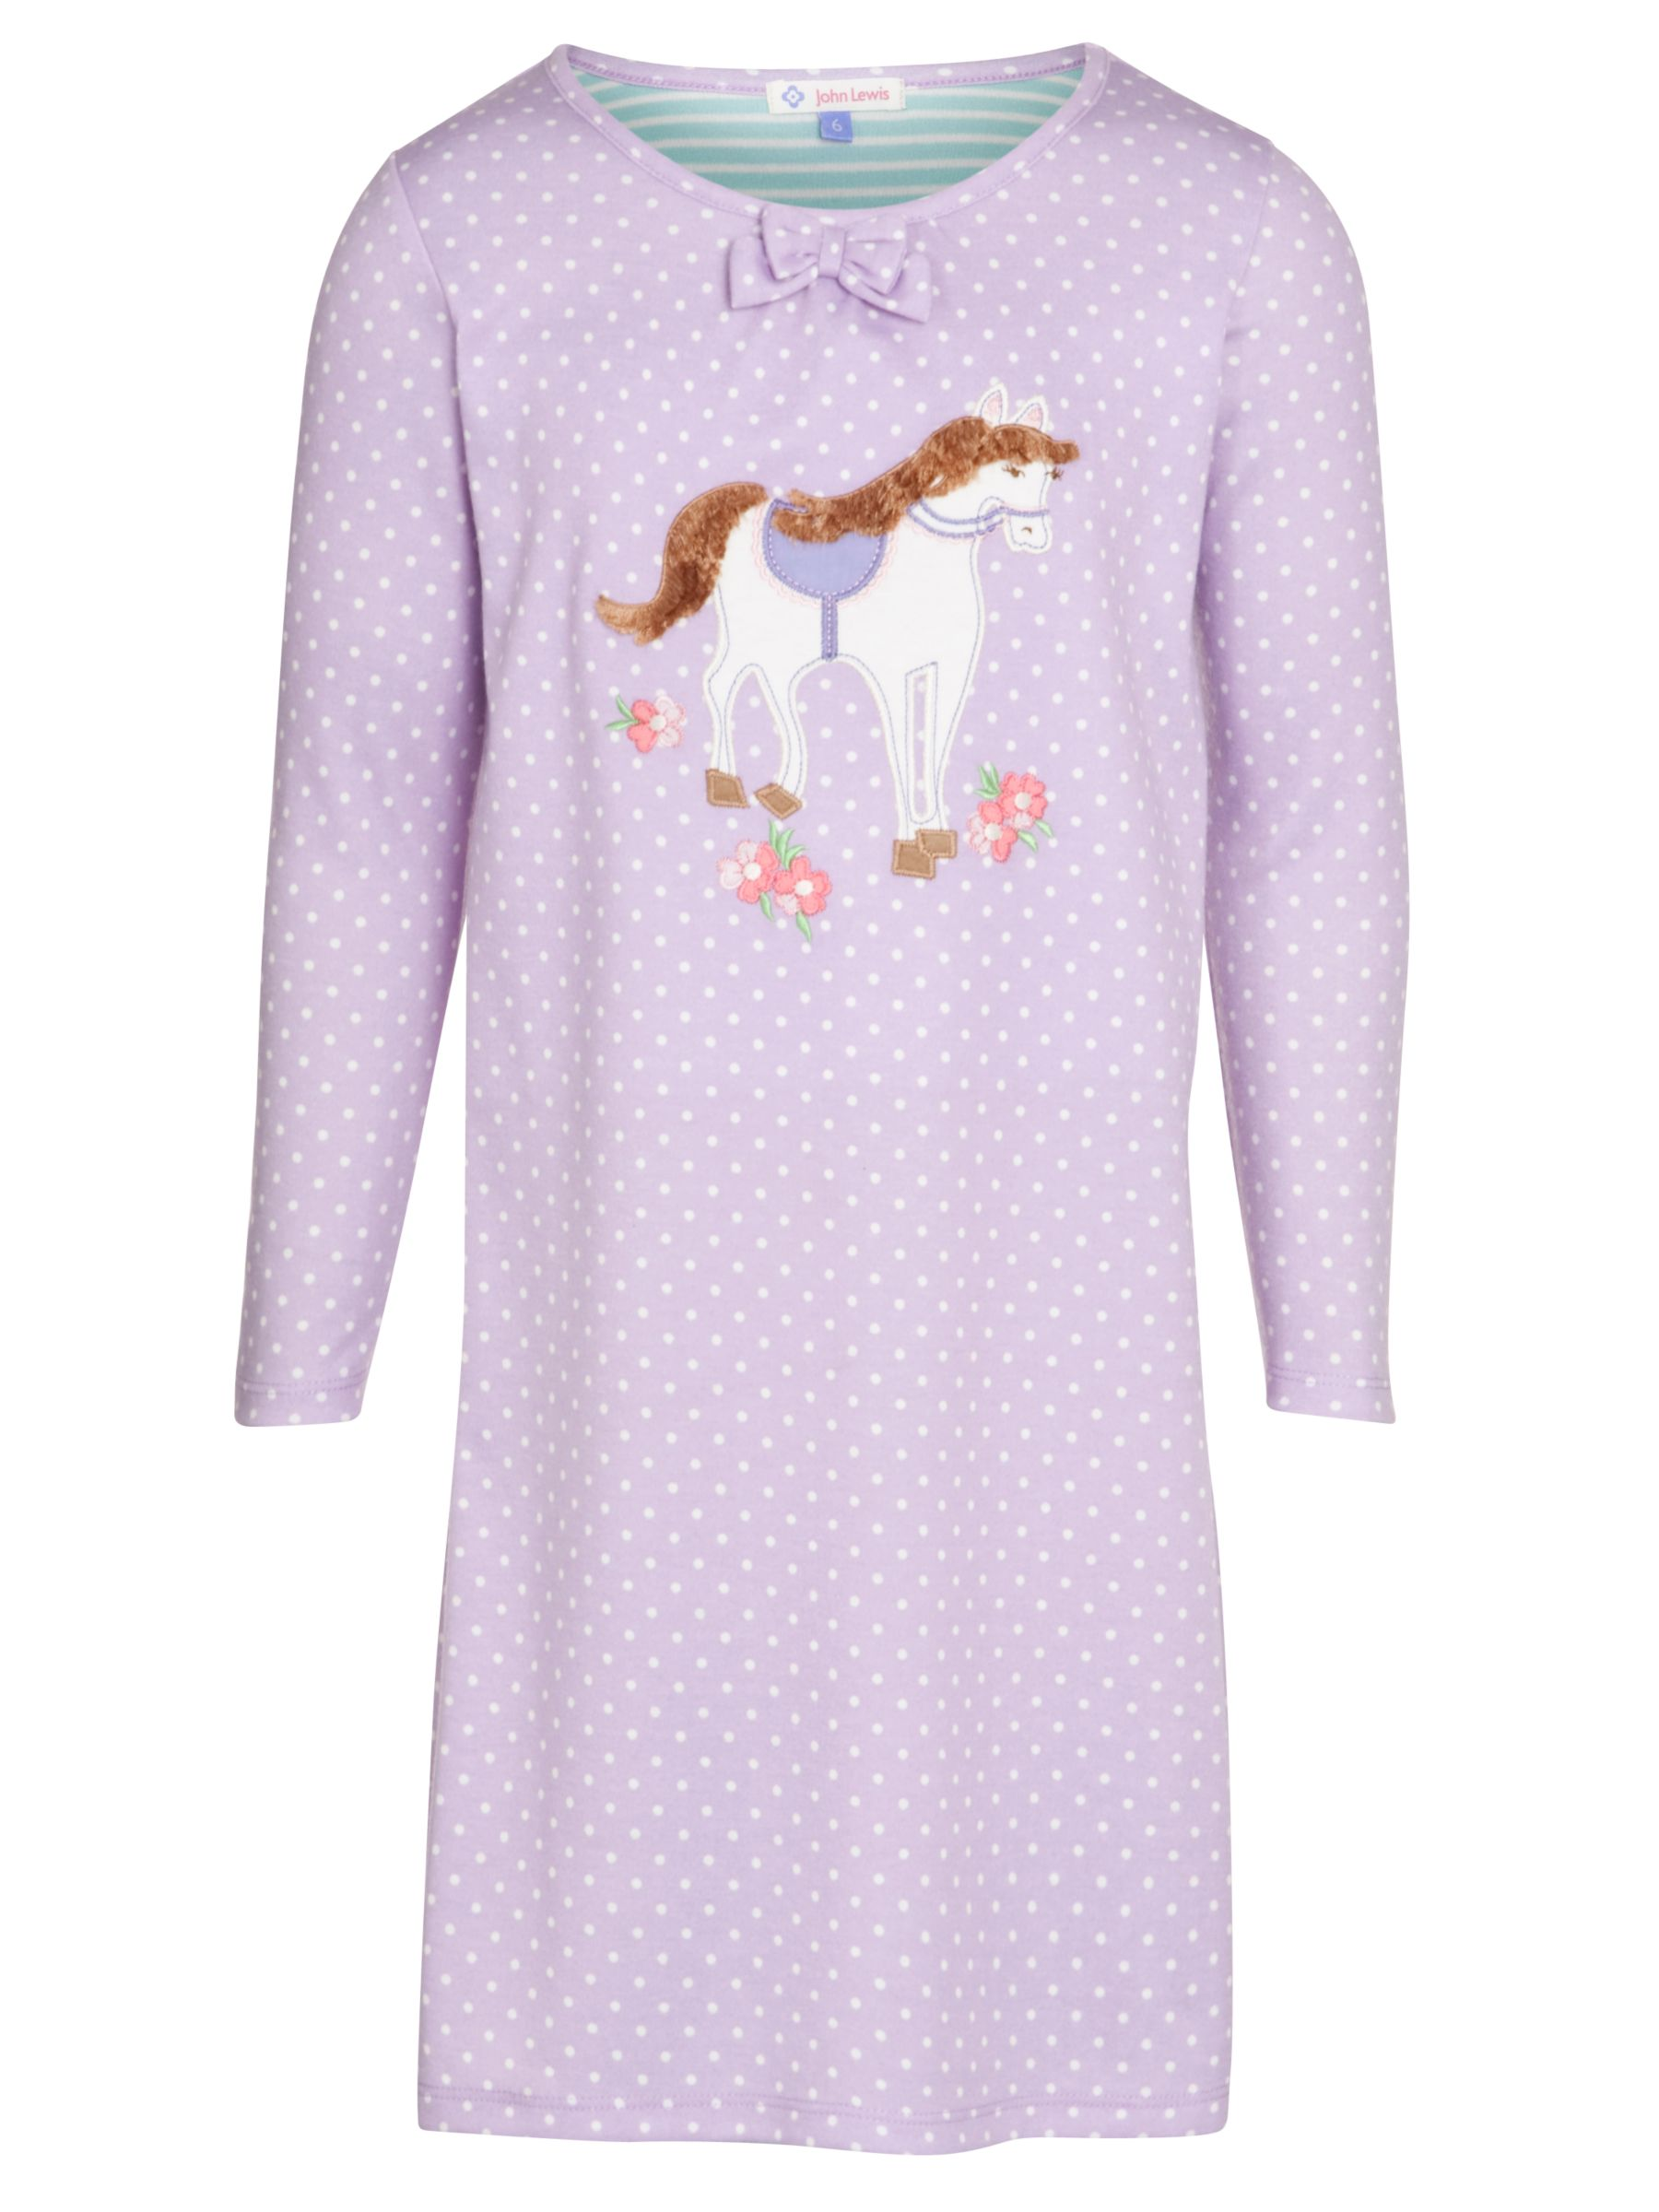 John Lewis Girl Polka Dot Horse Long Sleeve Nightdress, Lilac